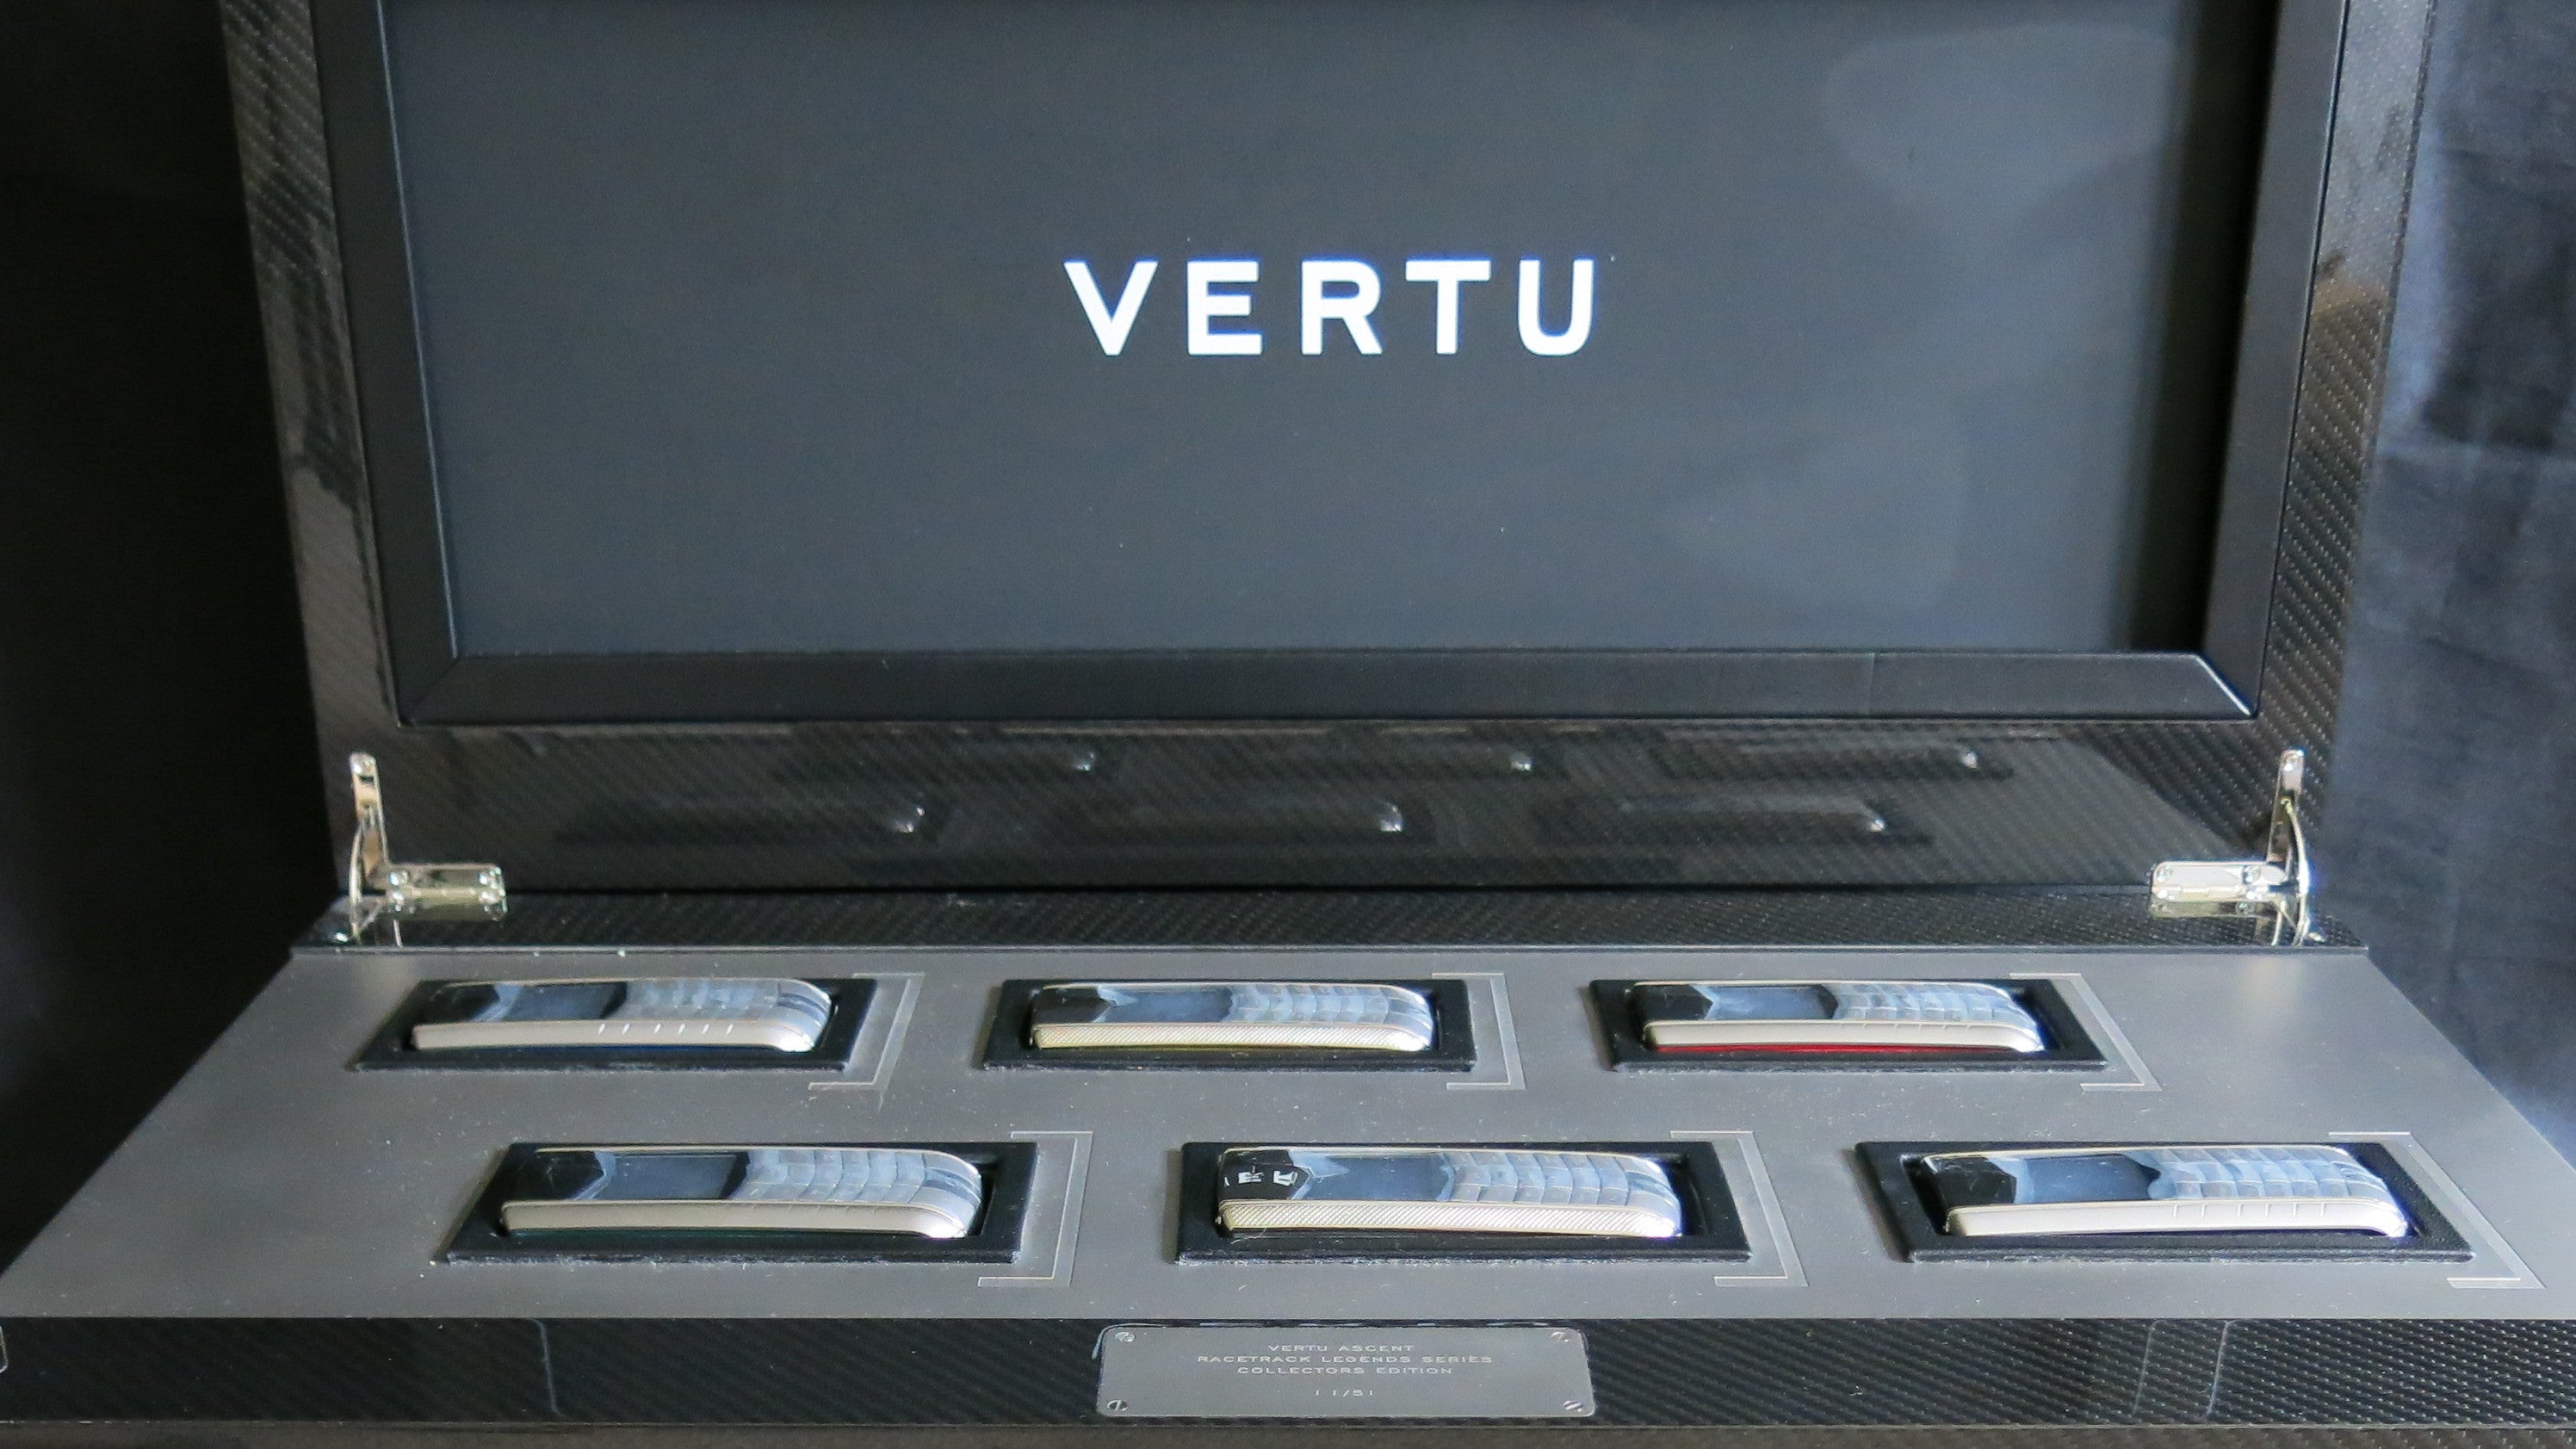 Vertu Is Now Auctioning Off Its Crappy Gold Phones For Cents On The Dollar